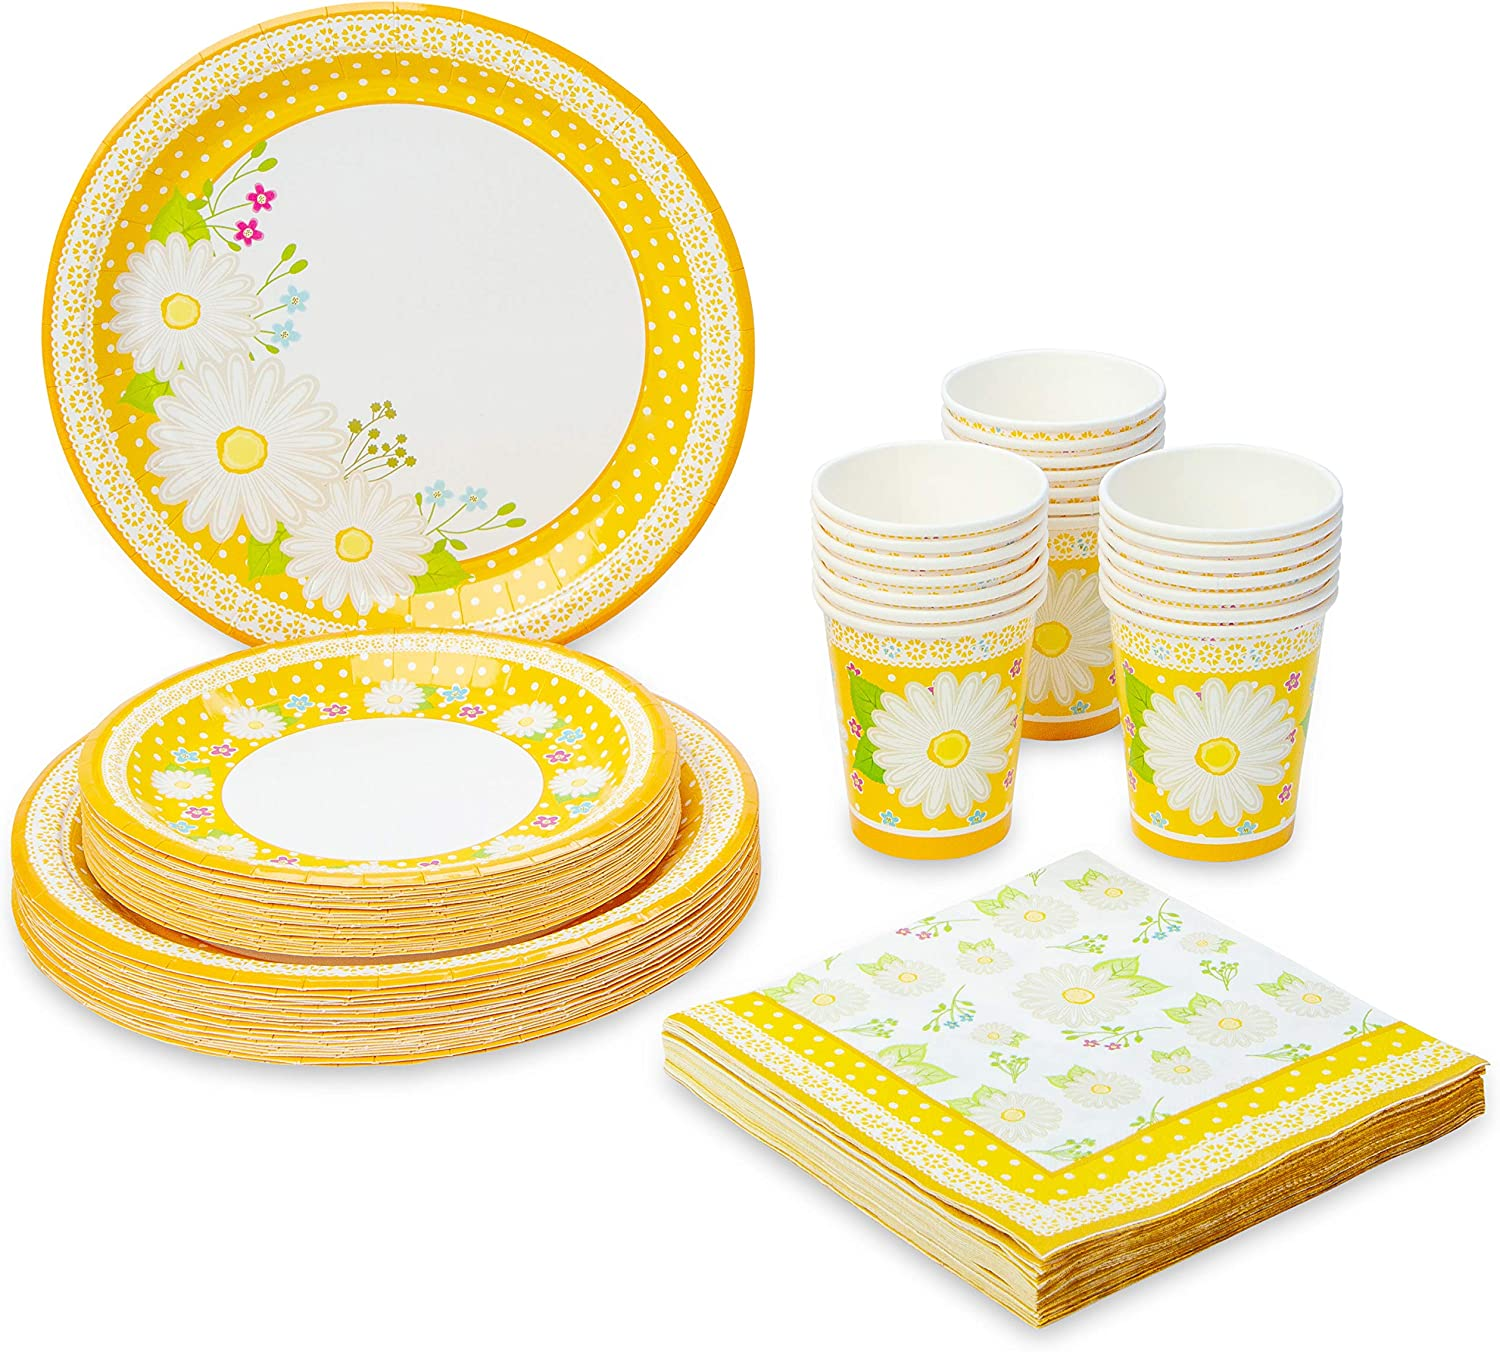 Royal Magnolia Floral Party Supplies -Set of 24- Daisy Paper Plates (7 and 9 Inch), Paper Napkins and Party Cups - Disposable Flower Theme Dinnerware Set for Birthday, Baby Shower, Bachelorette Party